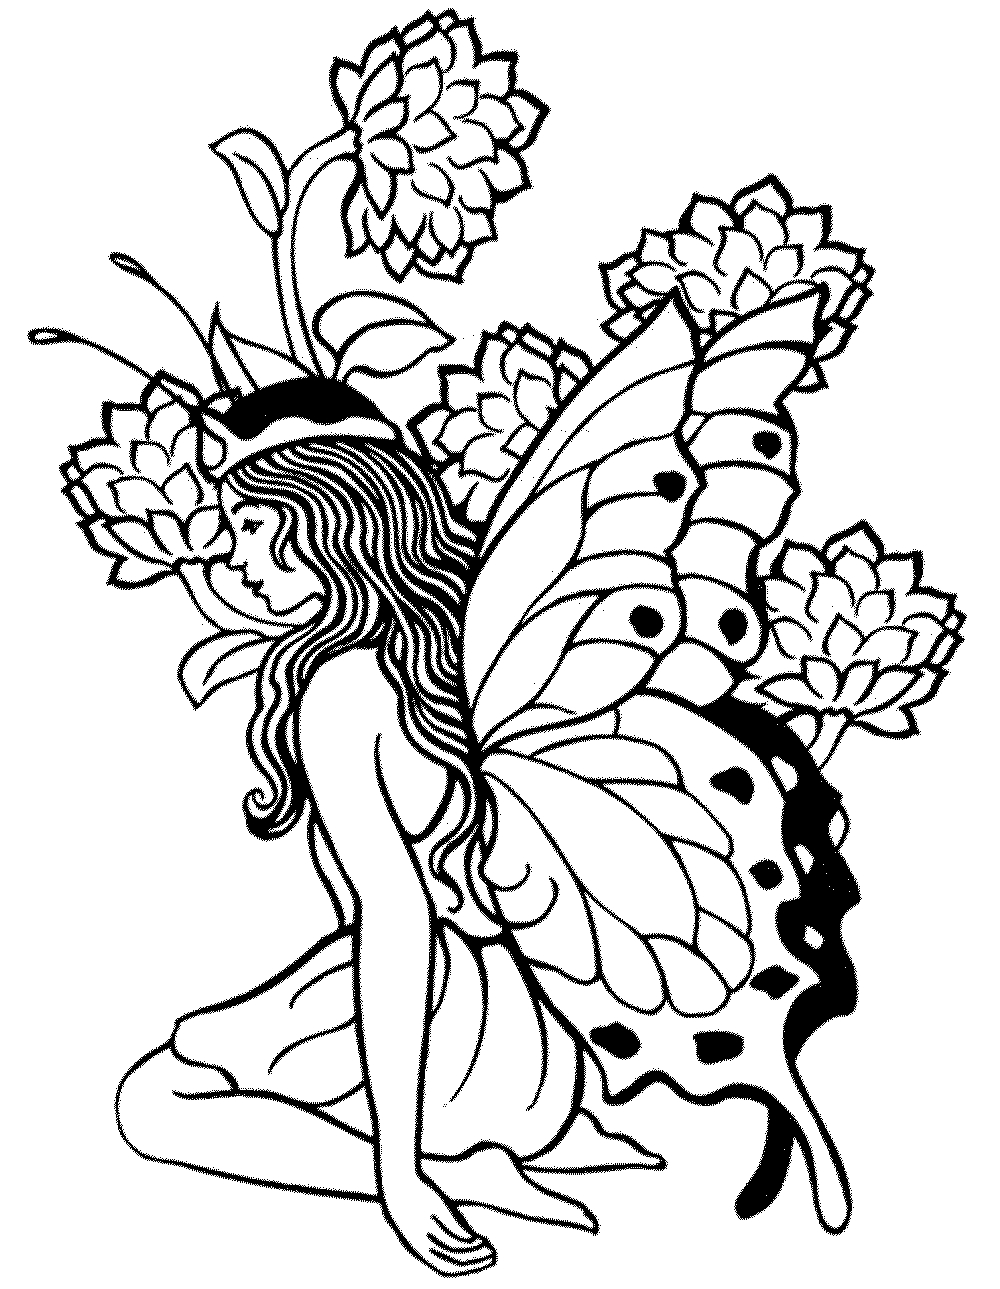 Printable Adult Coloring Pages Fairy - Coloring Home - Free Printable Coloring Pages Fairies Adults